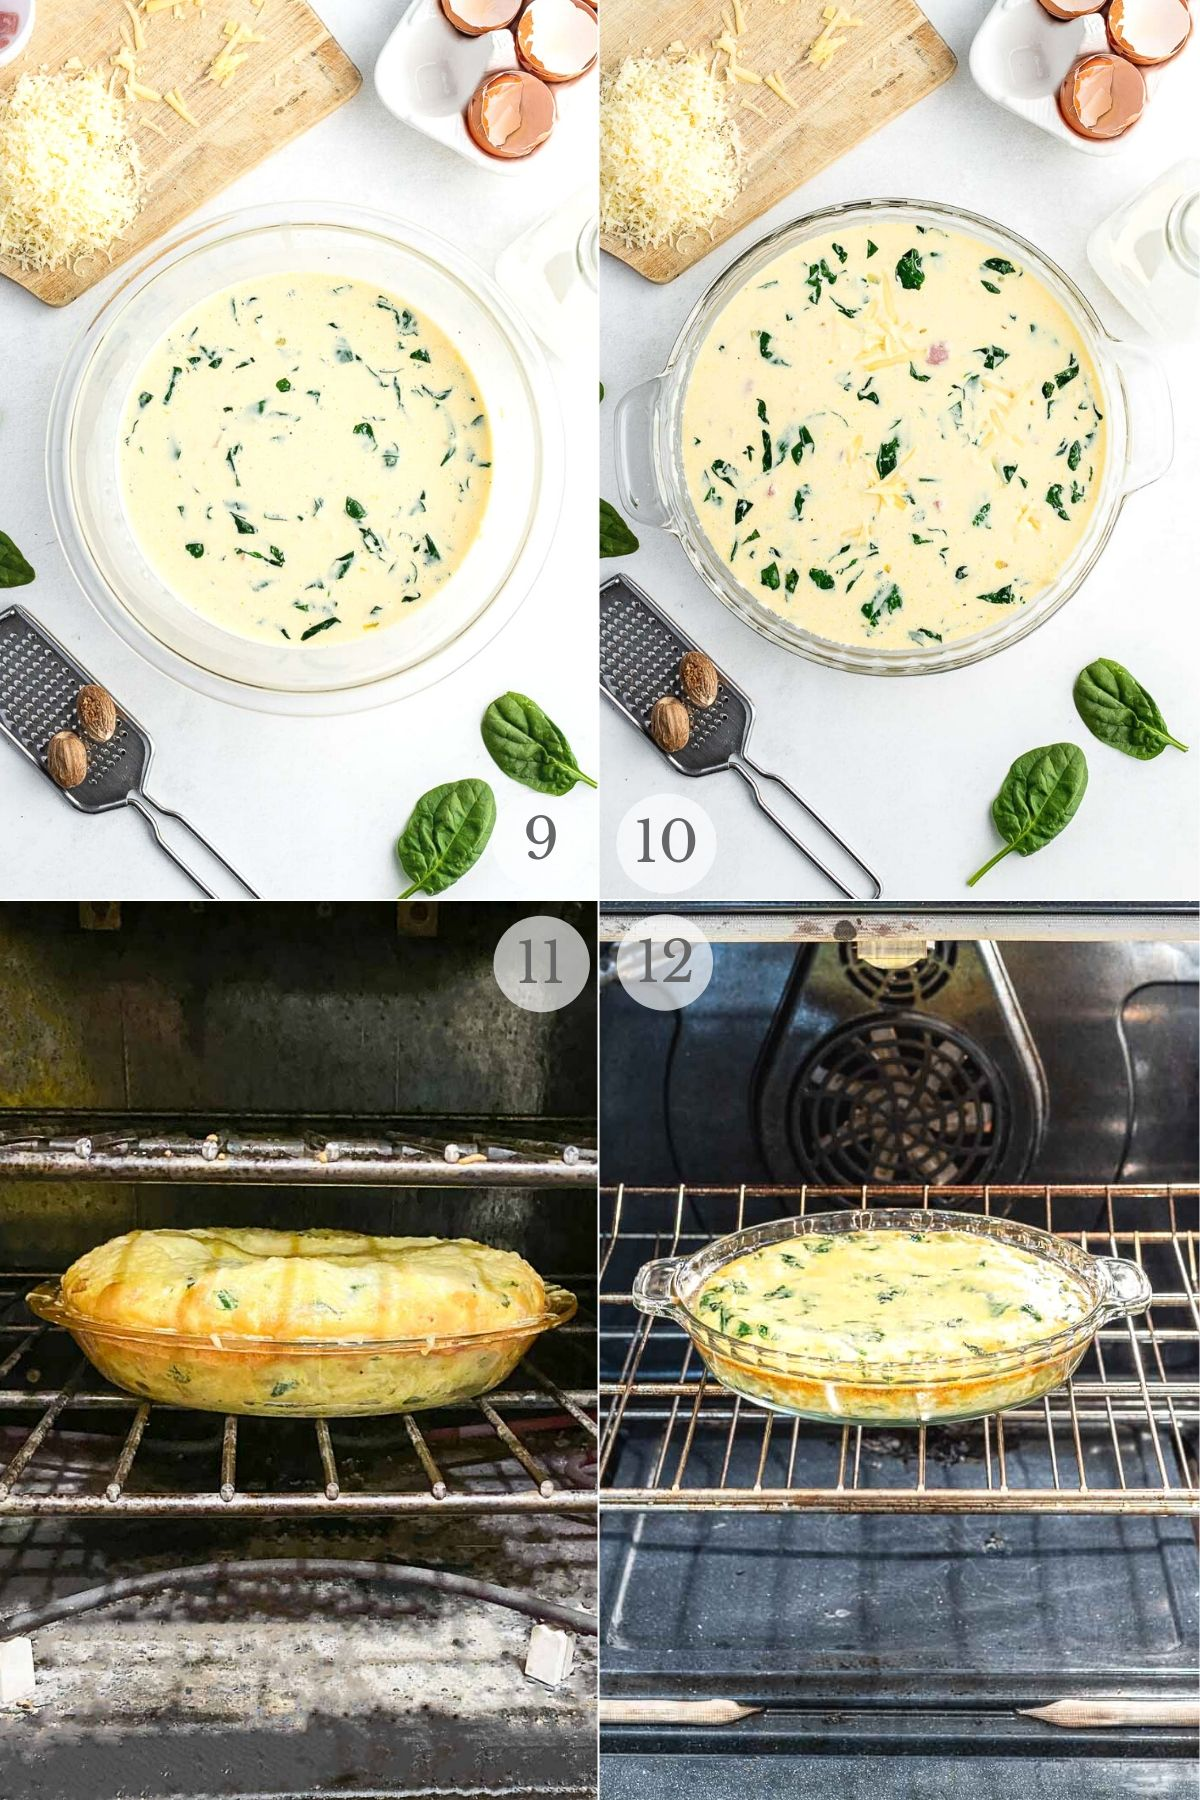 Crustless Quiche recipes steps 9-12